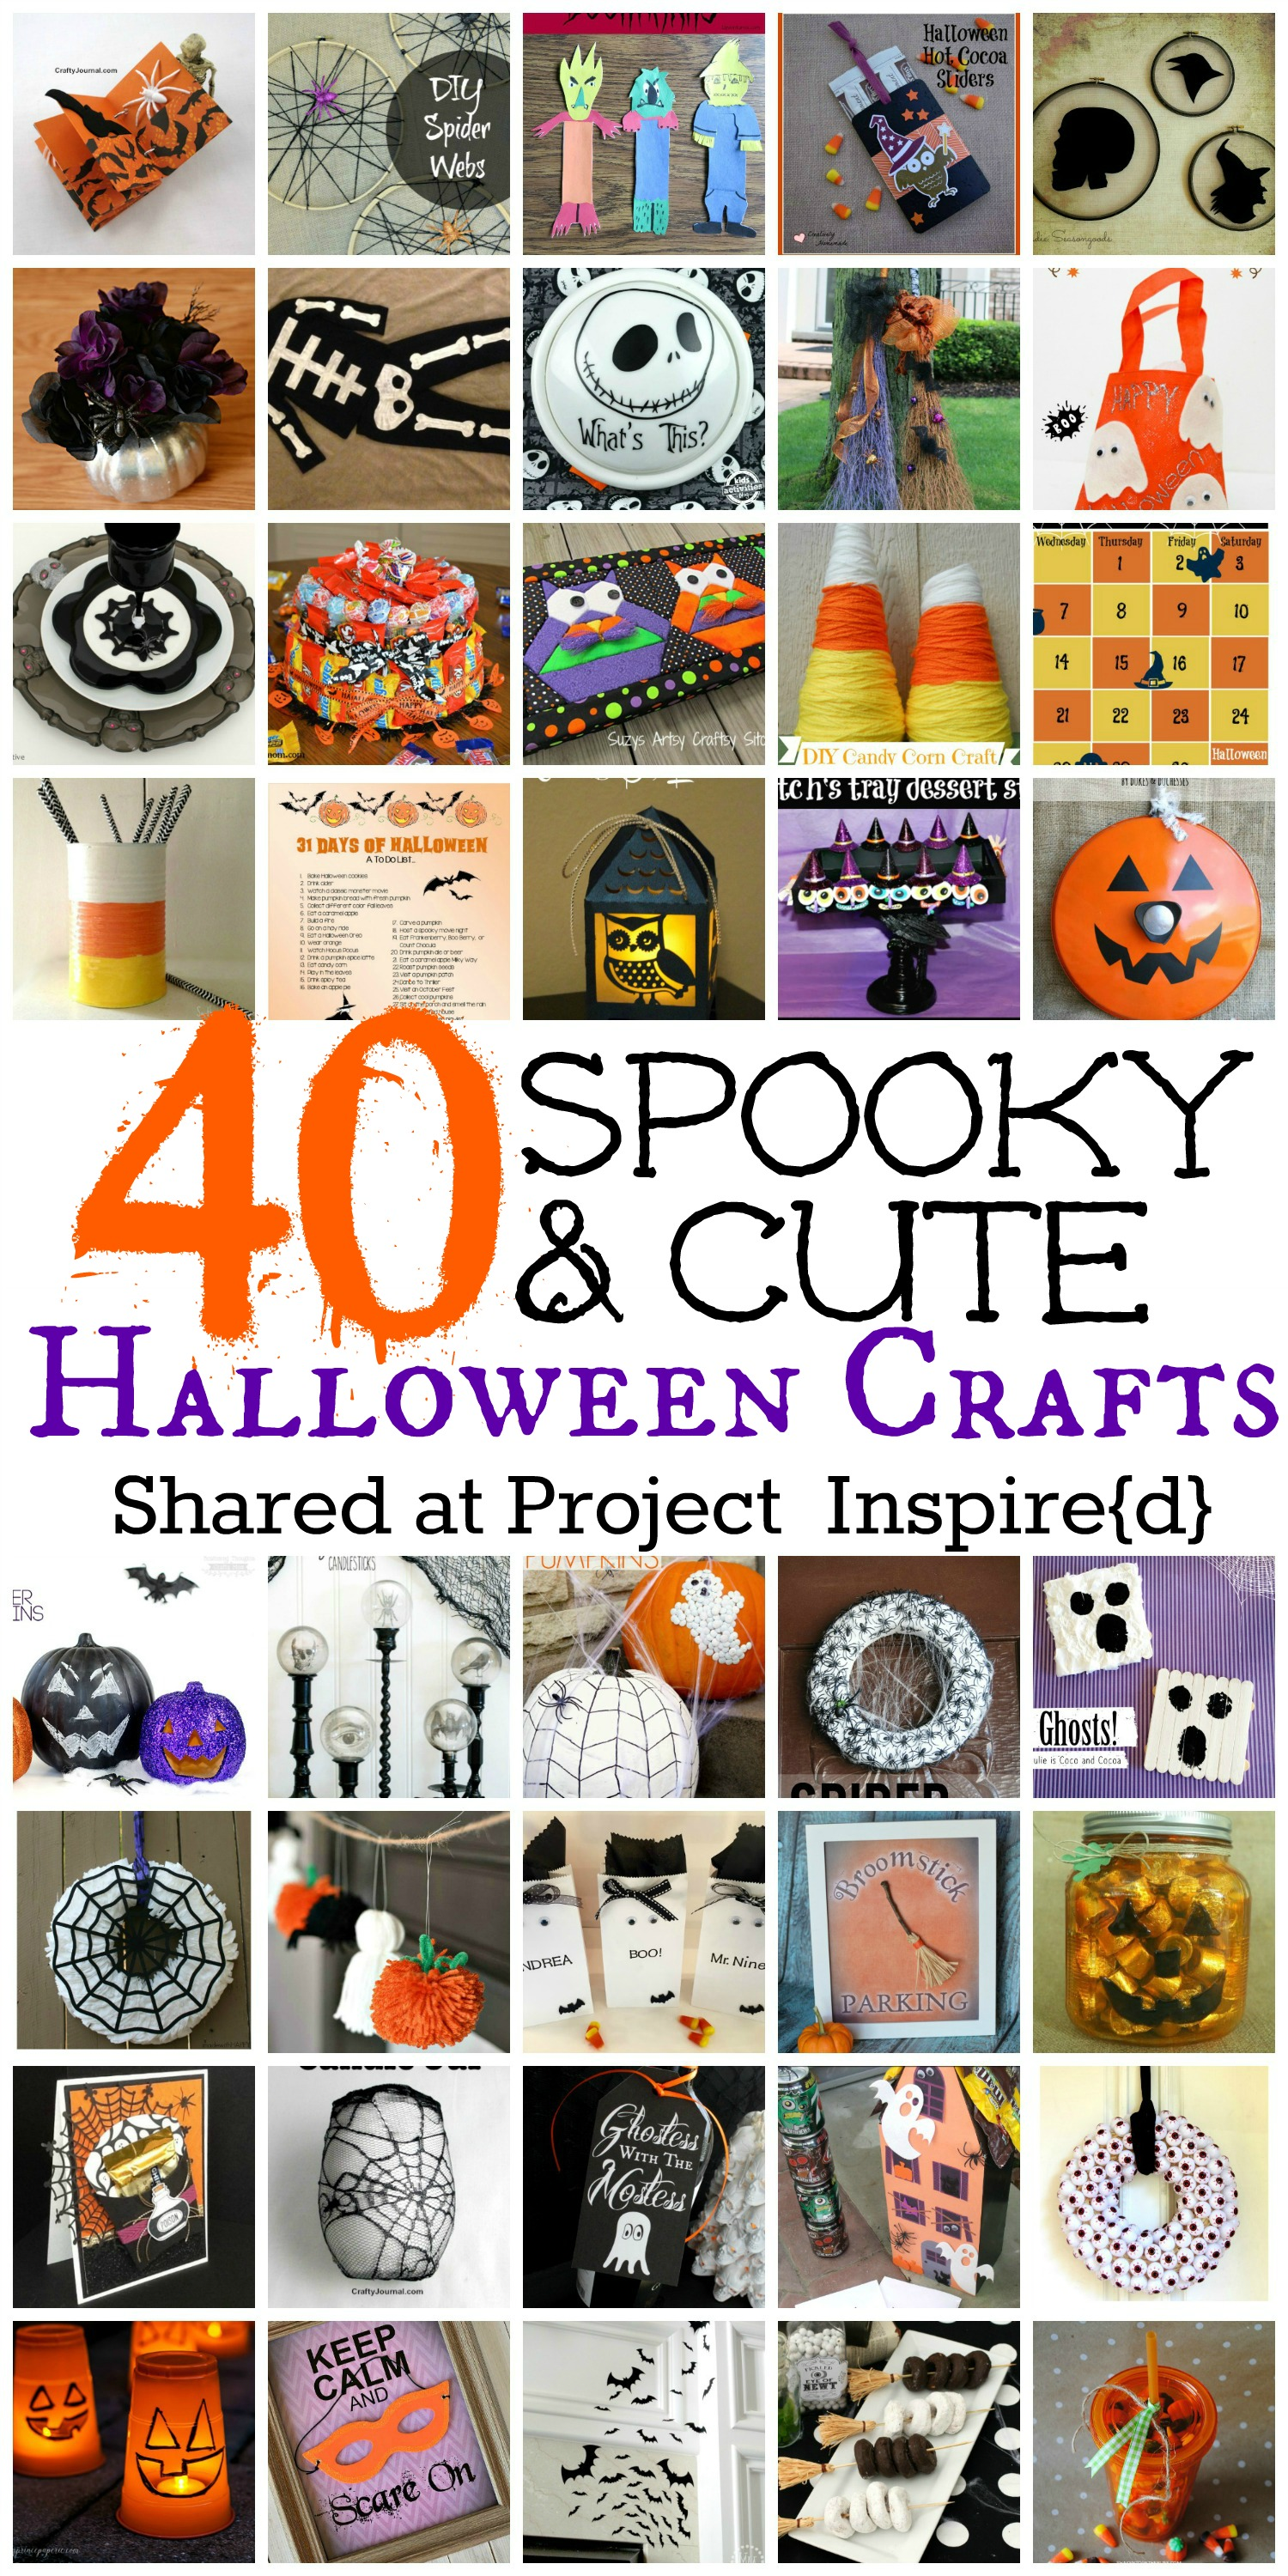 40 Spooky and Cute Crafts for Halloween